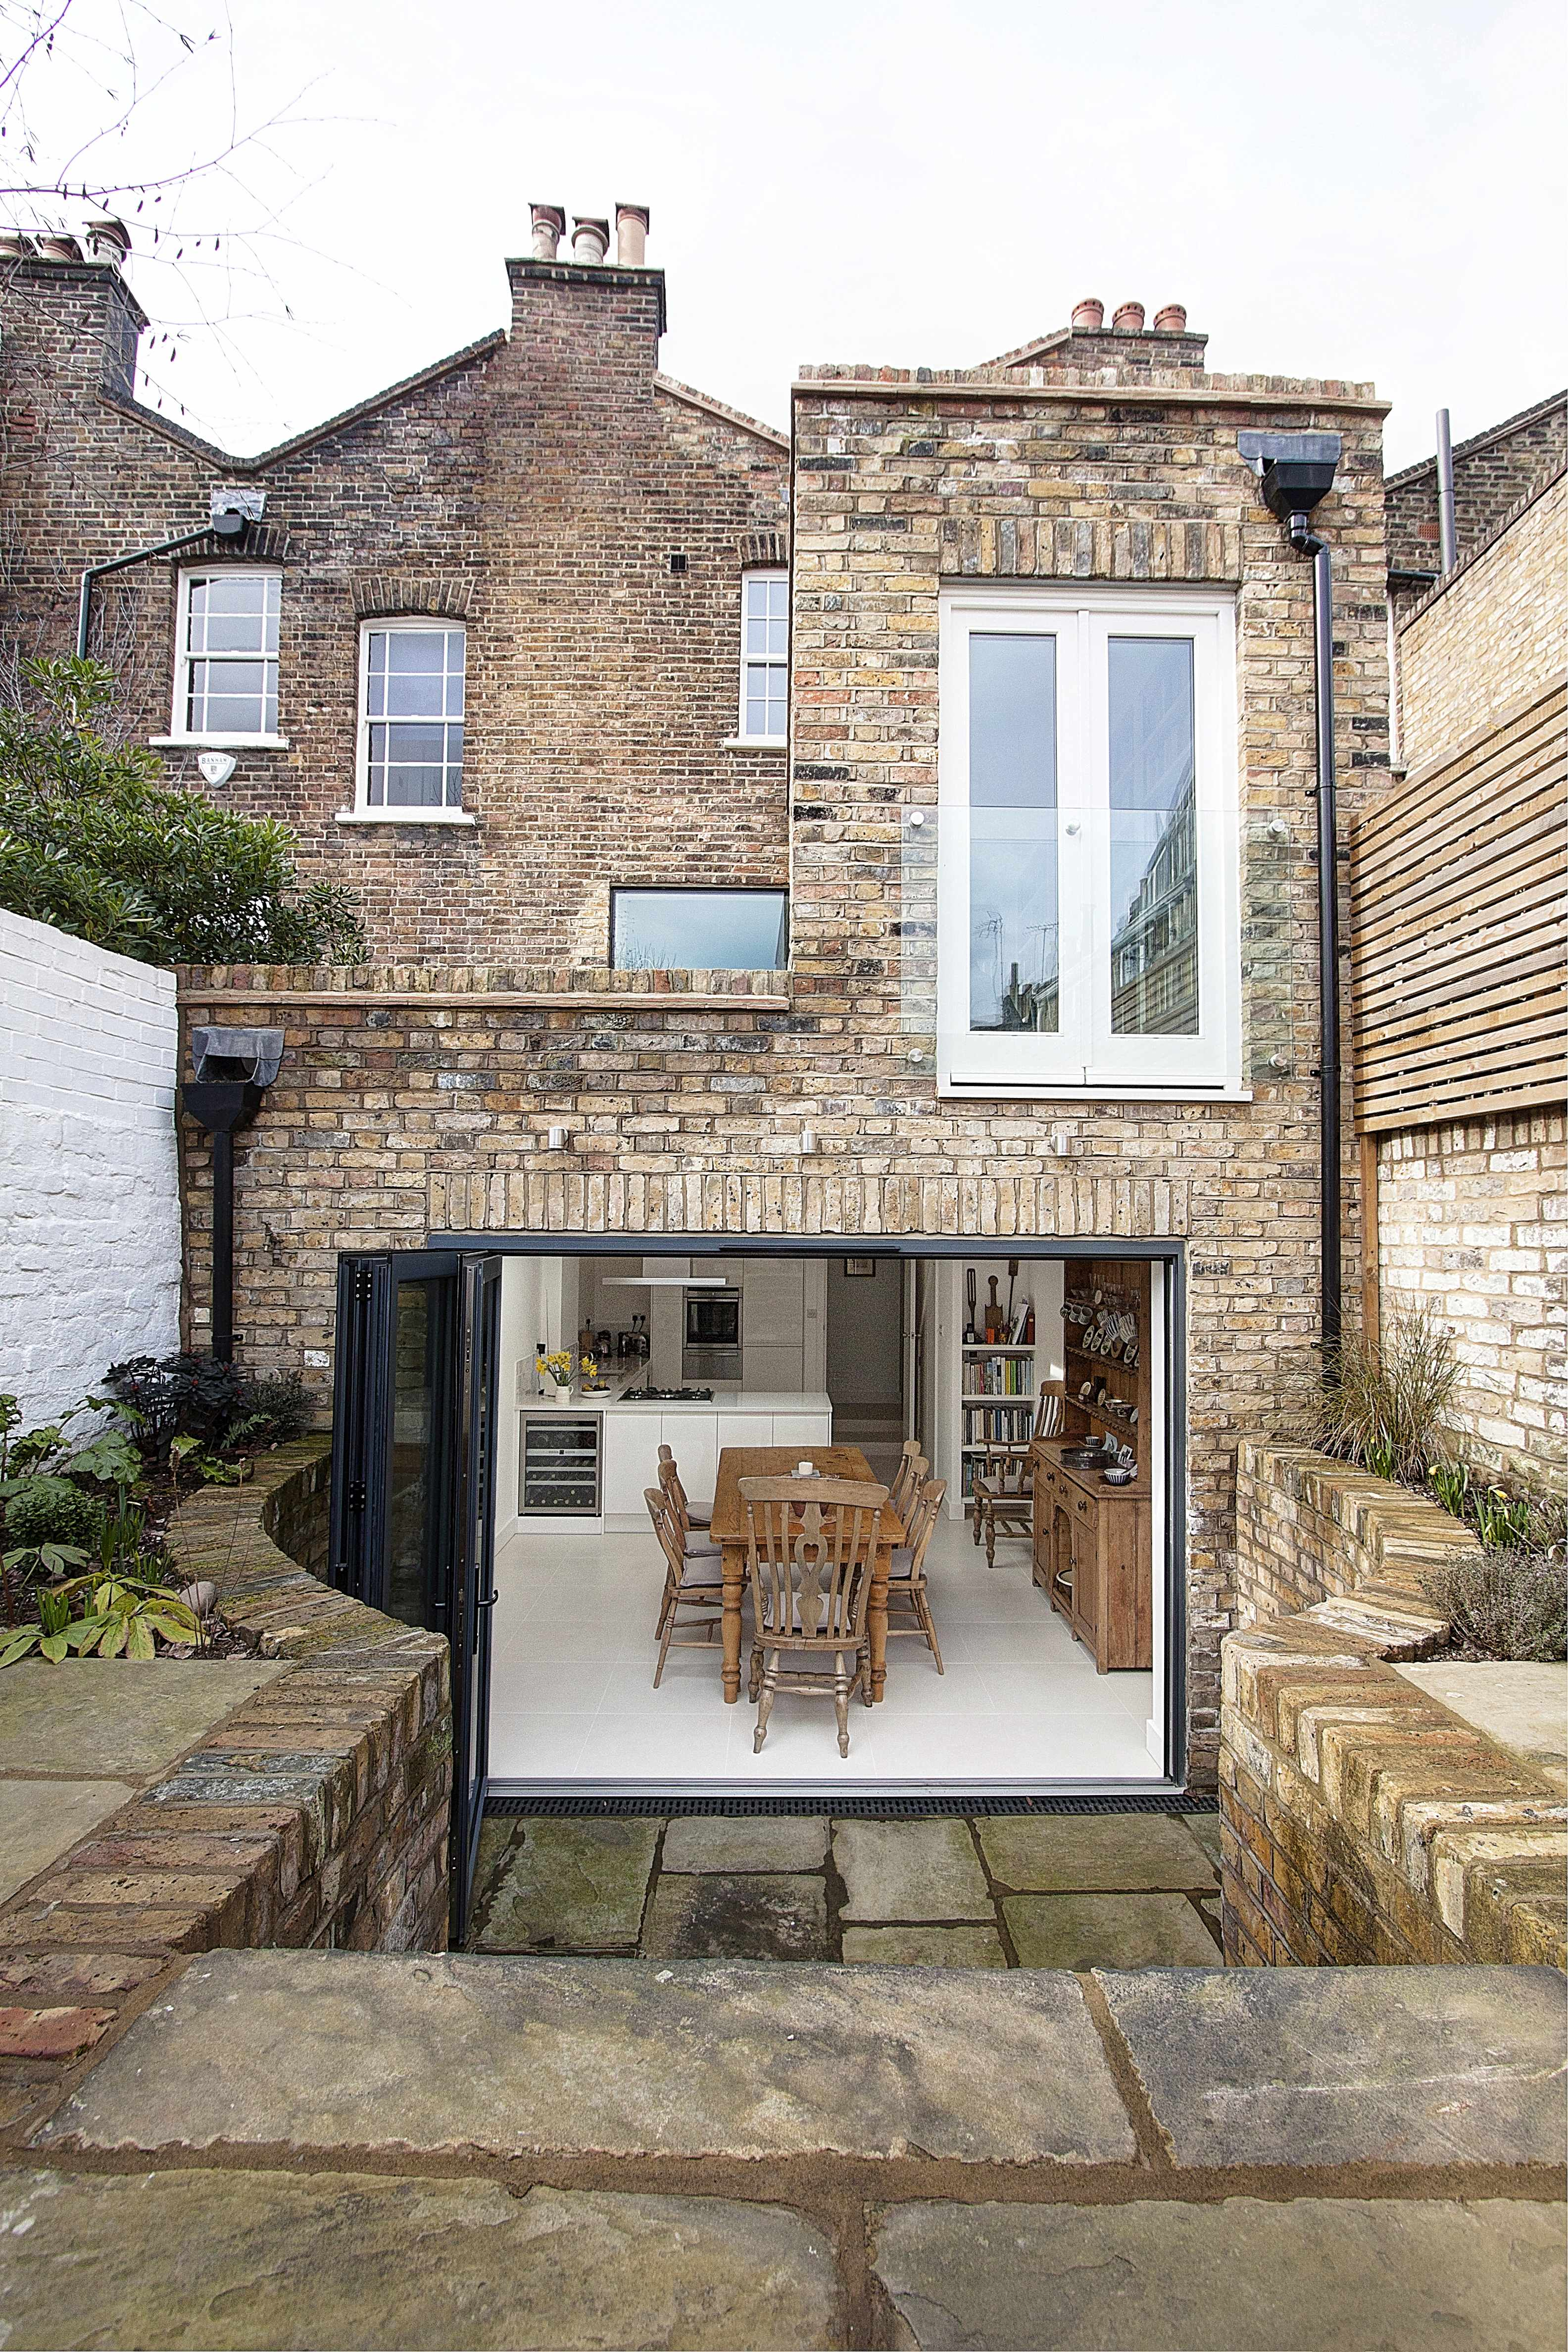 House Extension Ideas by DfM Architects - Design for Me on Terraced House Backyard Ideas id=13337